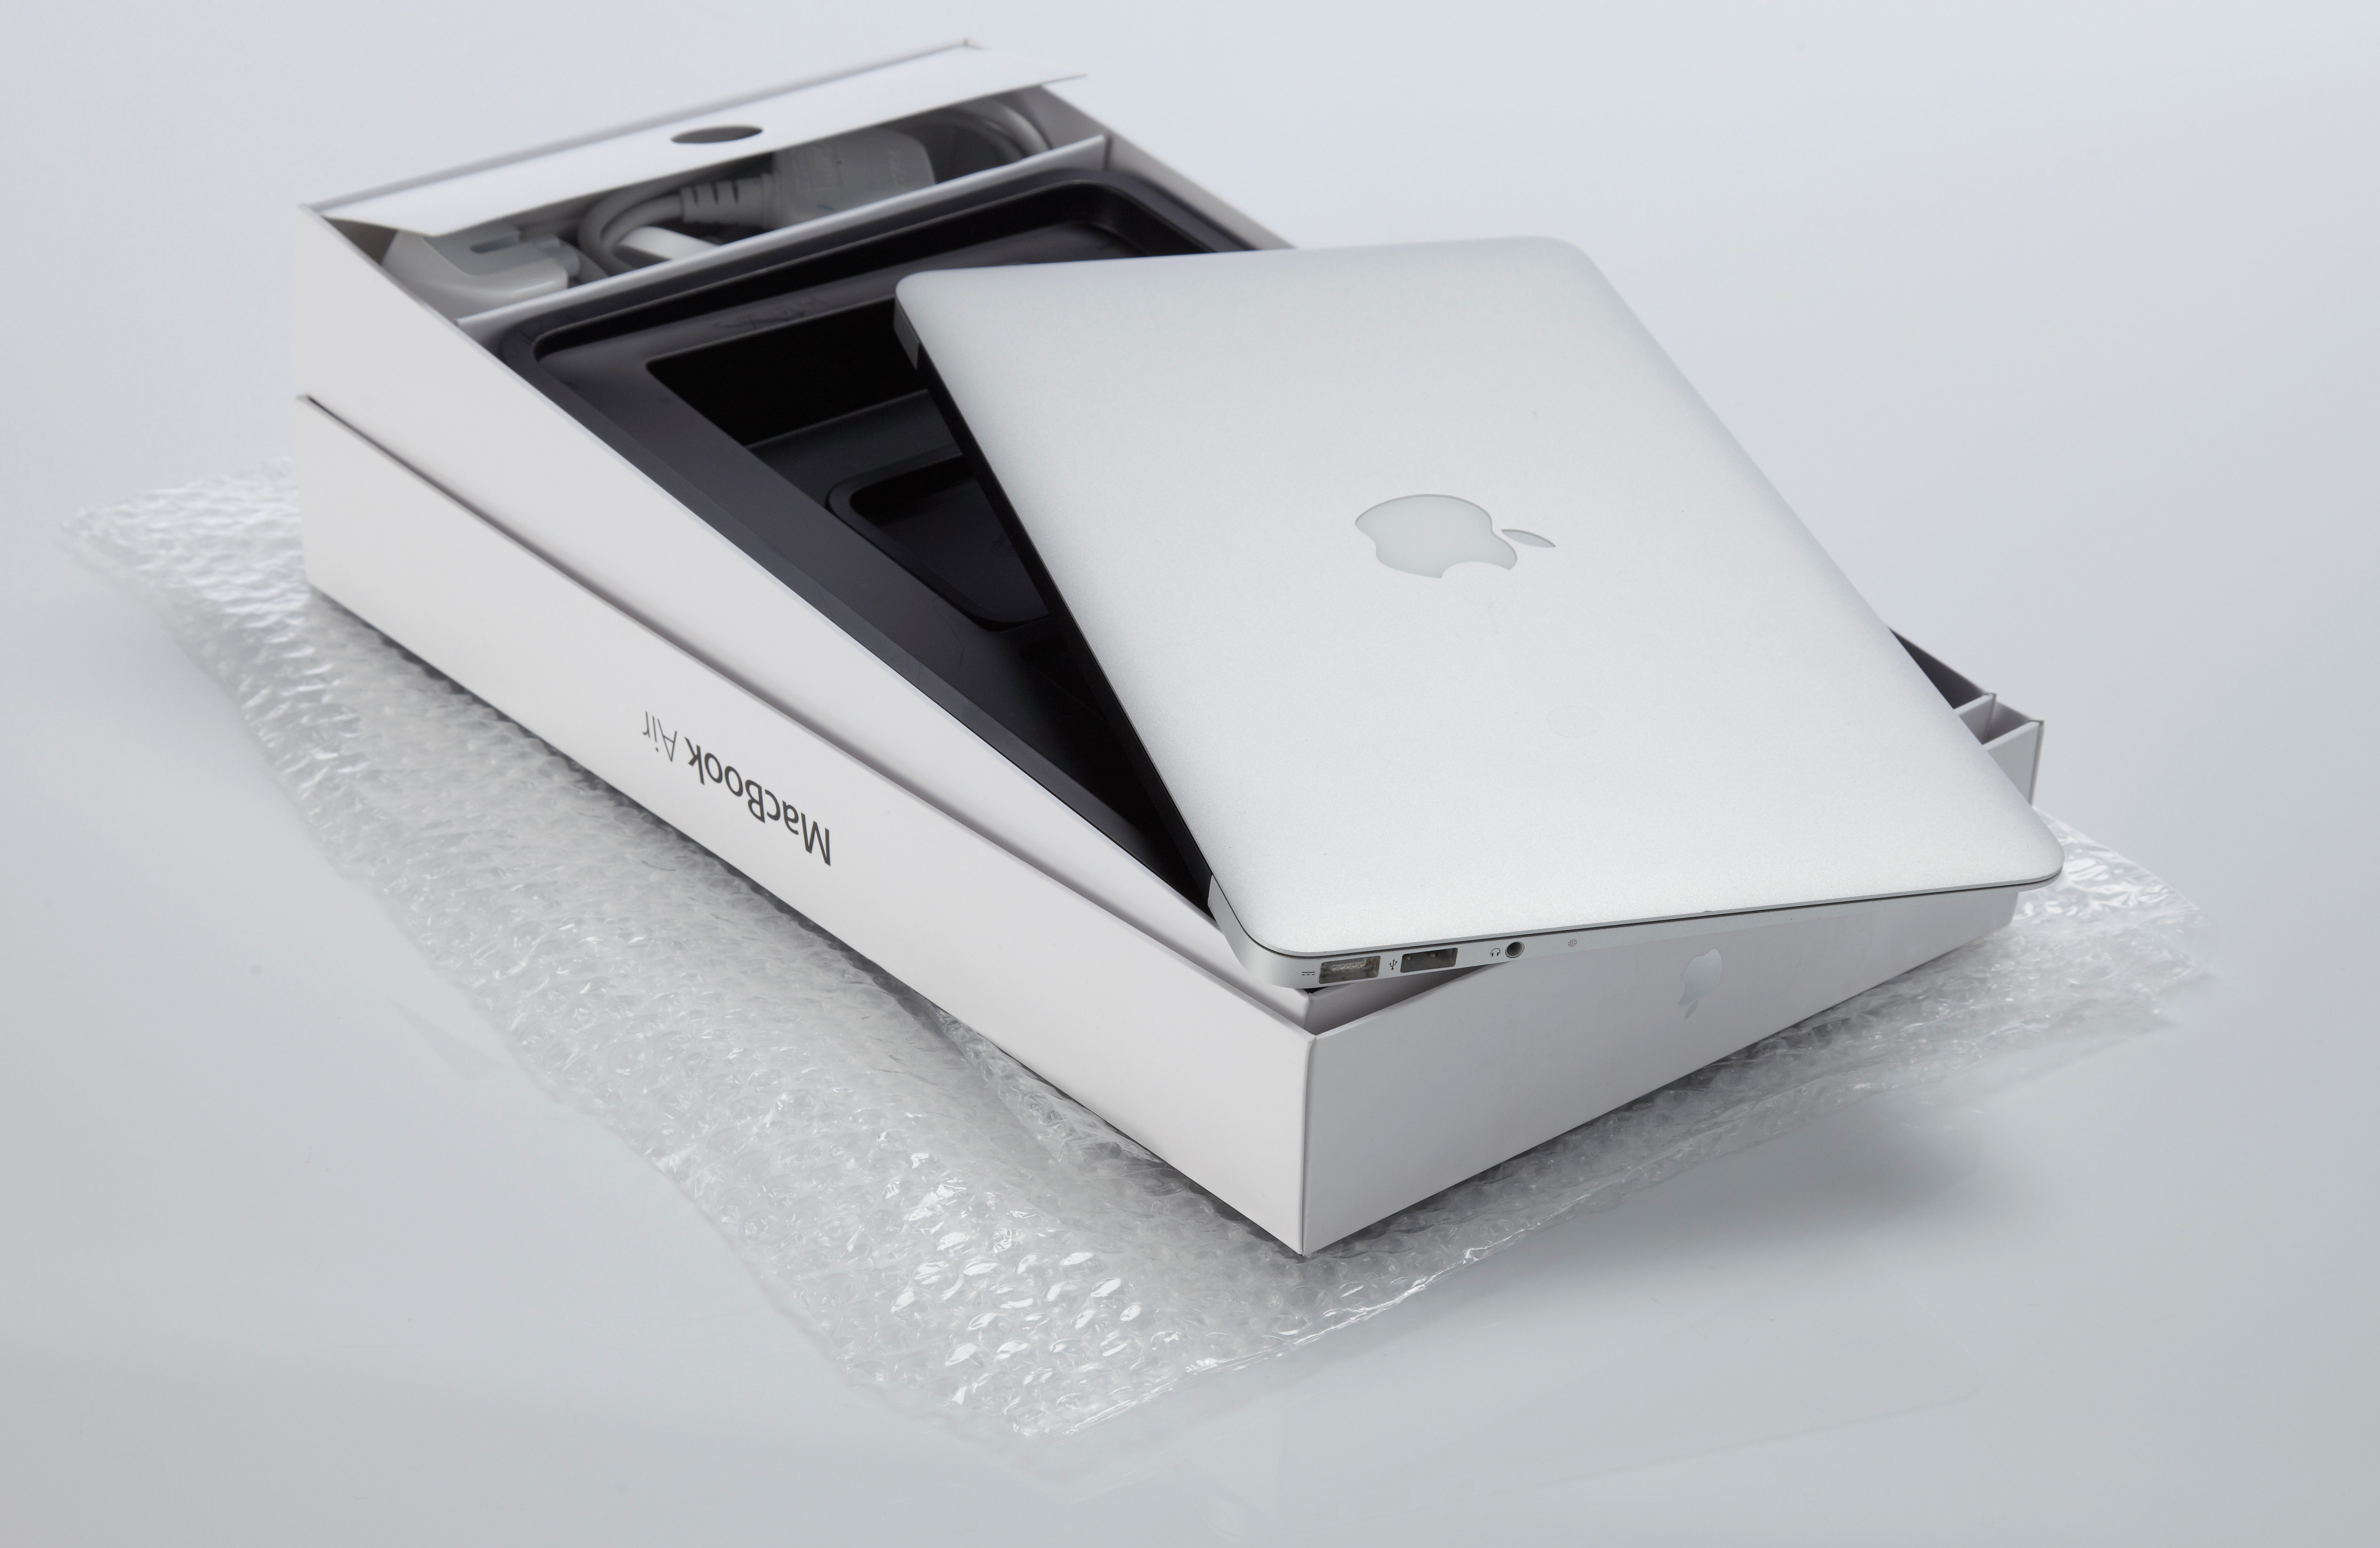 Apple-Compatible Hardware And Accessories